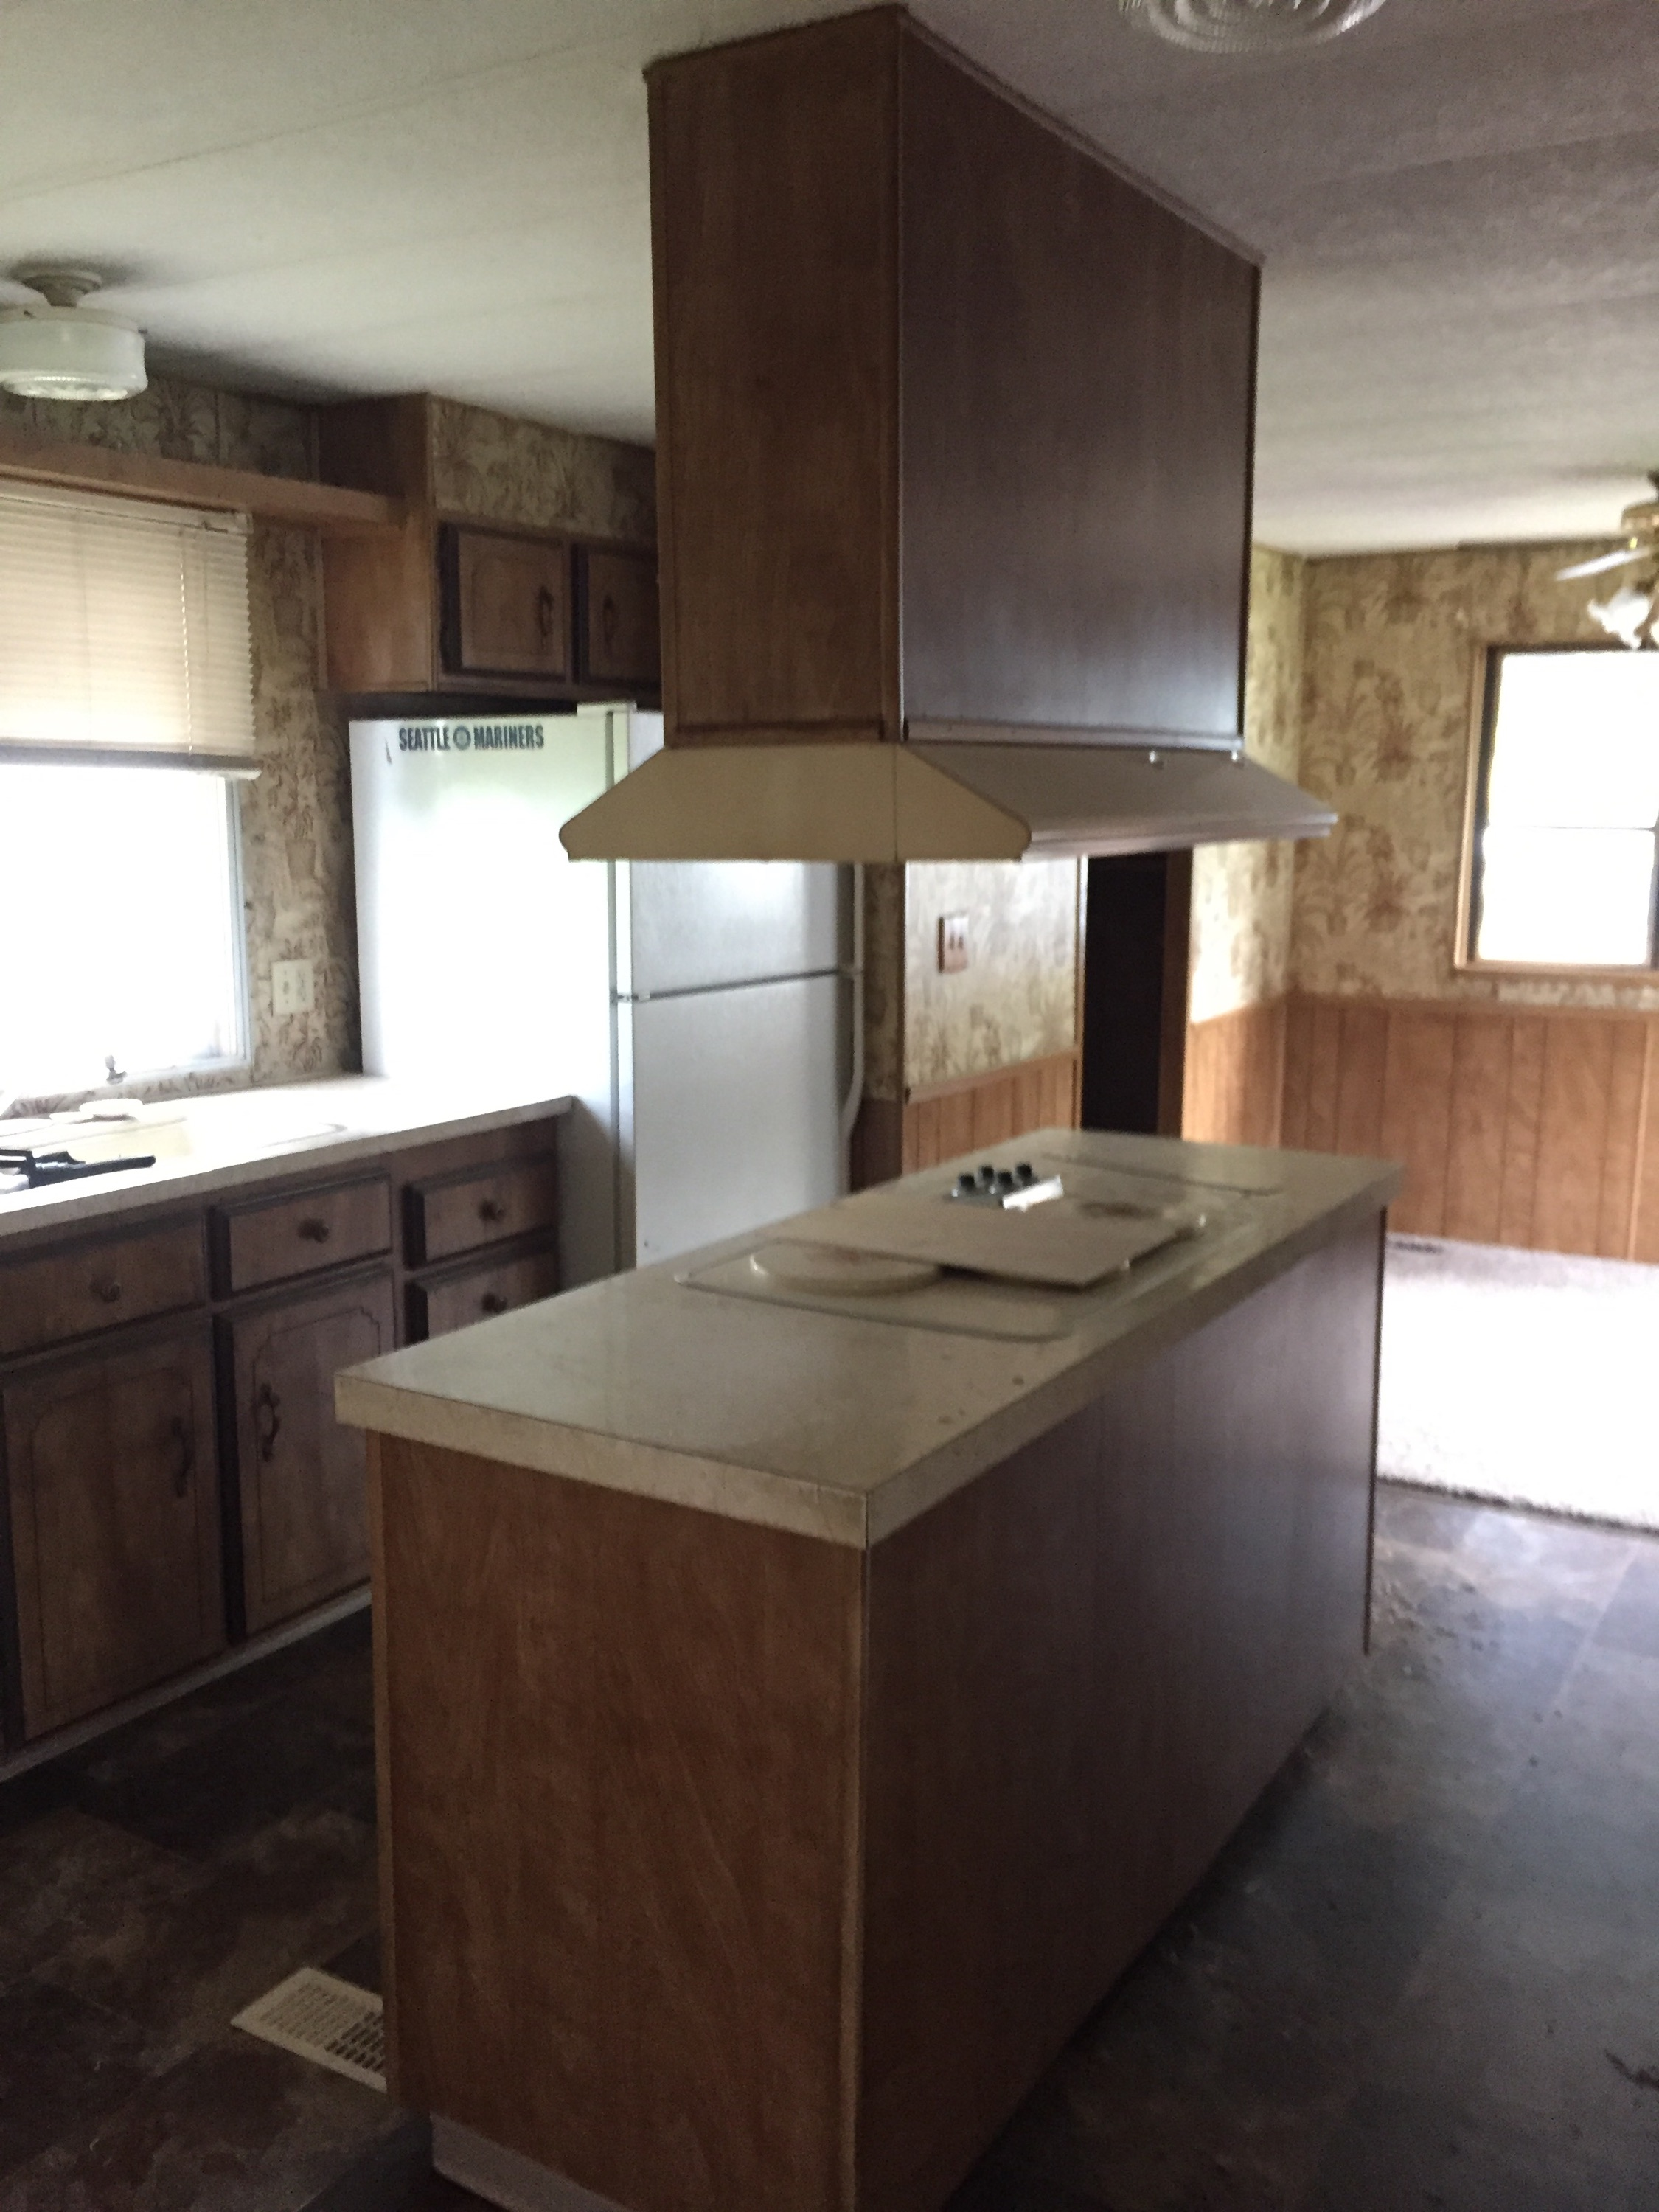 Available Now Is A Cute 2 Bedroom 1 Bath Mobile Home In The Rain Forest MHP Of Forks WA Location Great With Fishing And Hunting